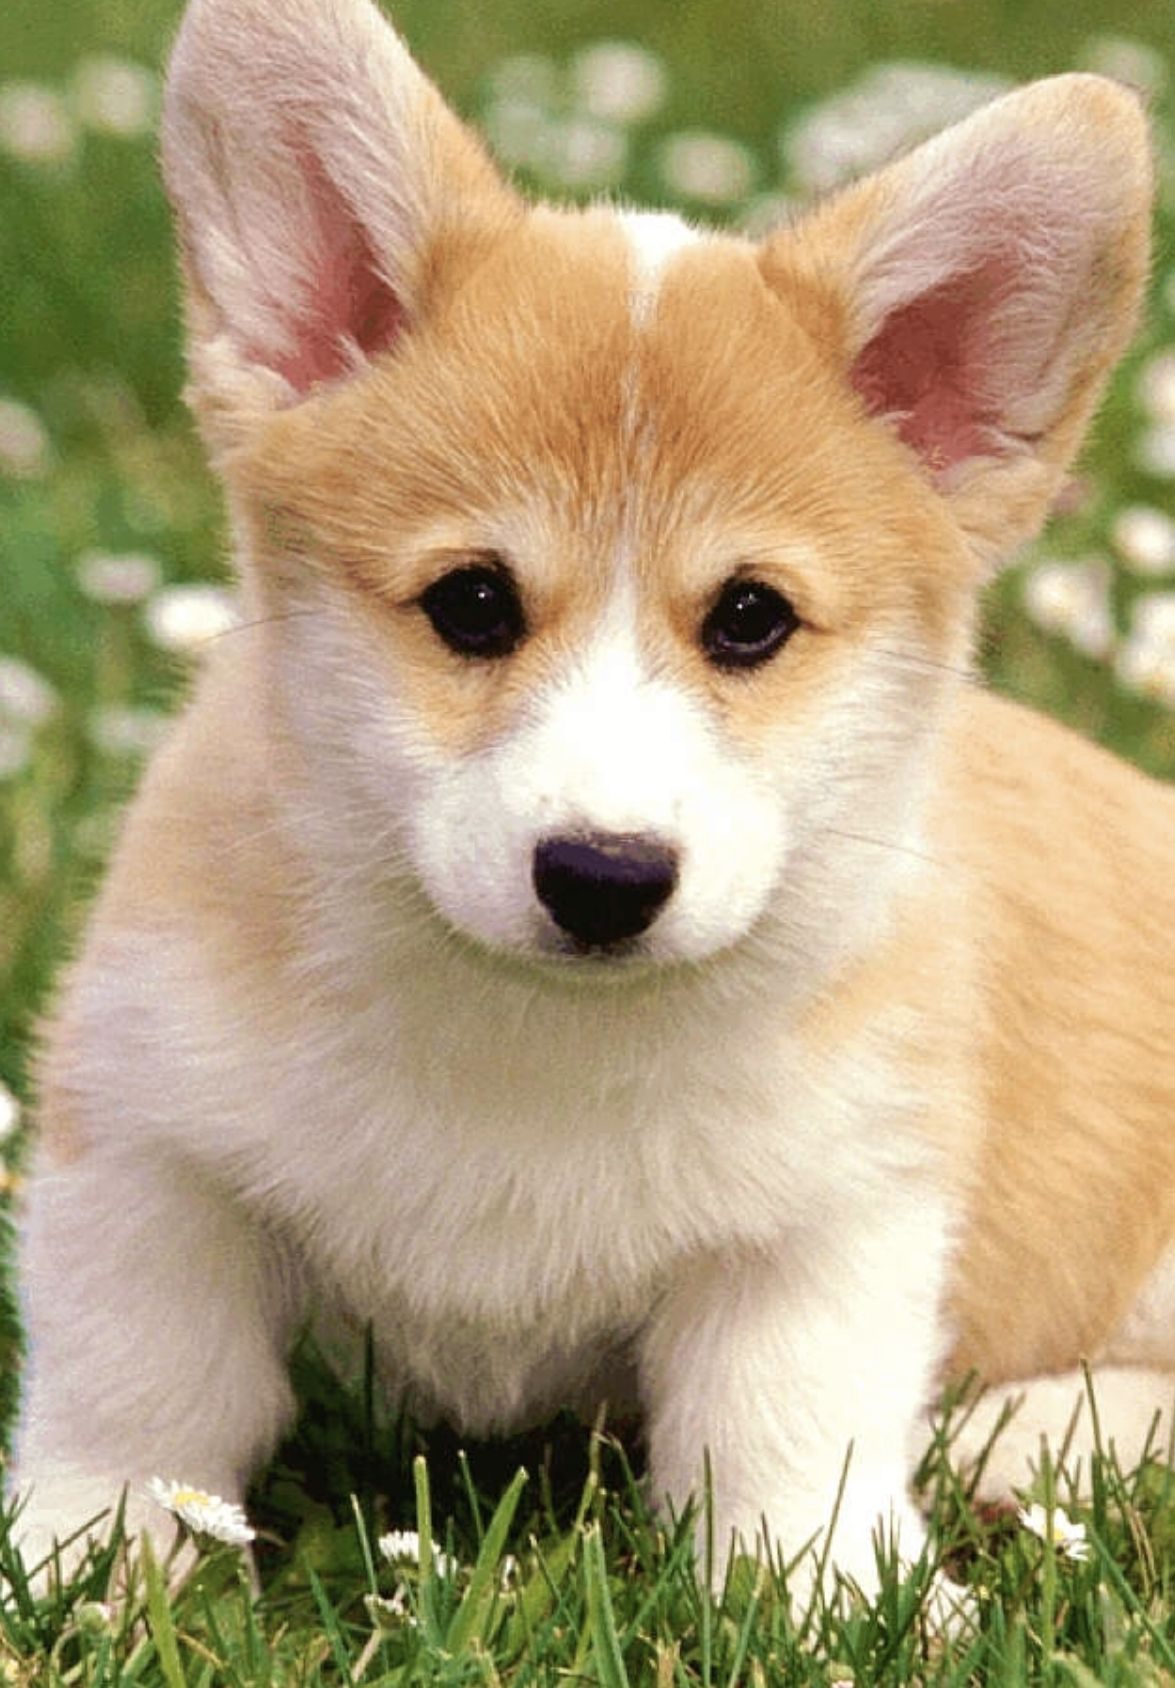 Cute Puppy Wallpaper Iphone Android Desktop Backgrounds Cute Puppy Wallpaper Cute Puppies Puppies